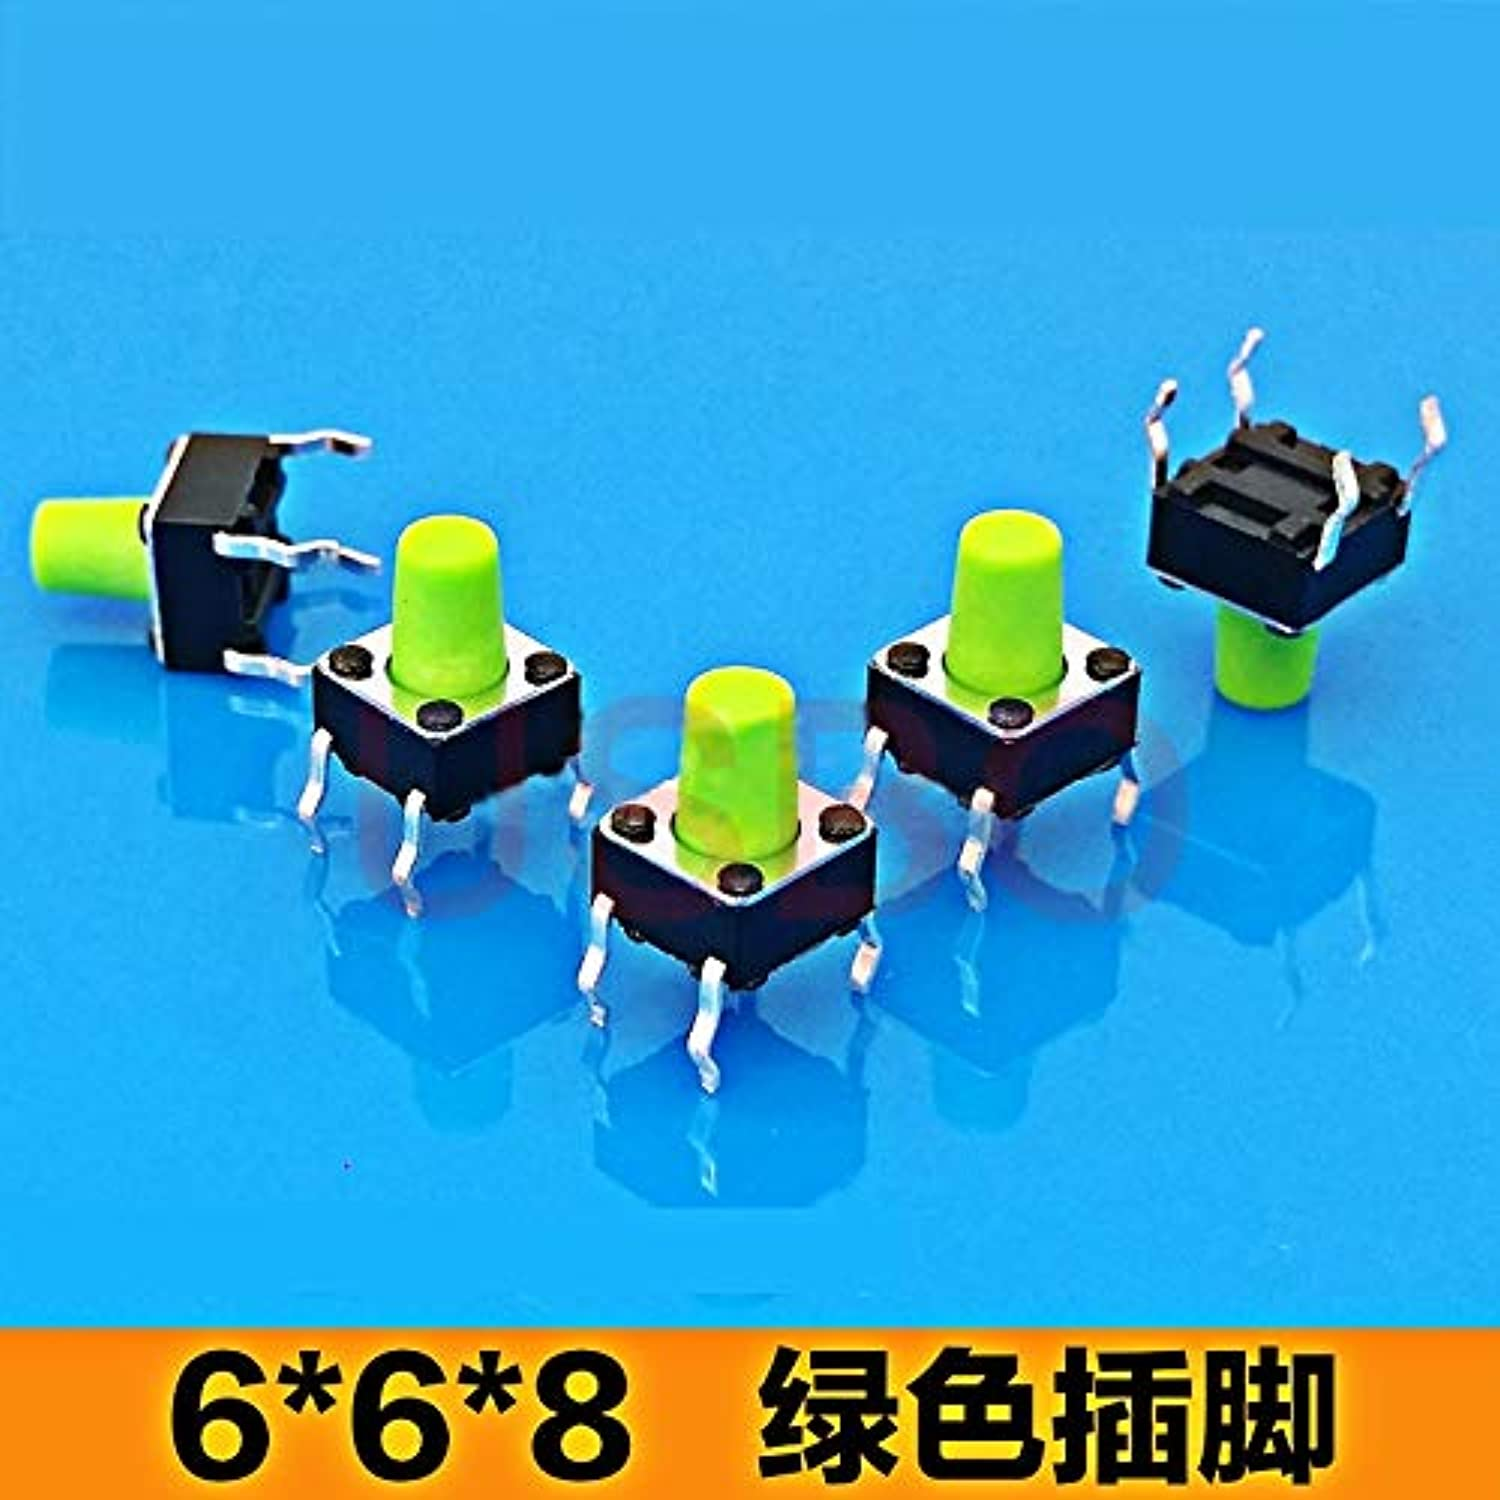 Brass Touch Switch with Button Tactile Push Button Switch 6  6  8mm 4 Legs Green blueee Brown  (color  blueee)